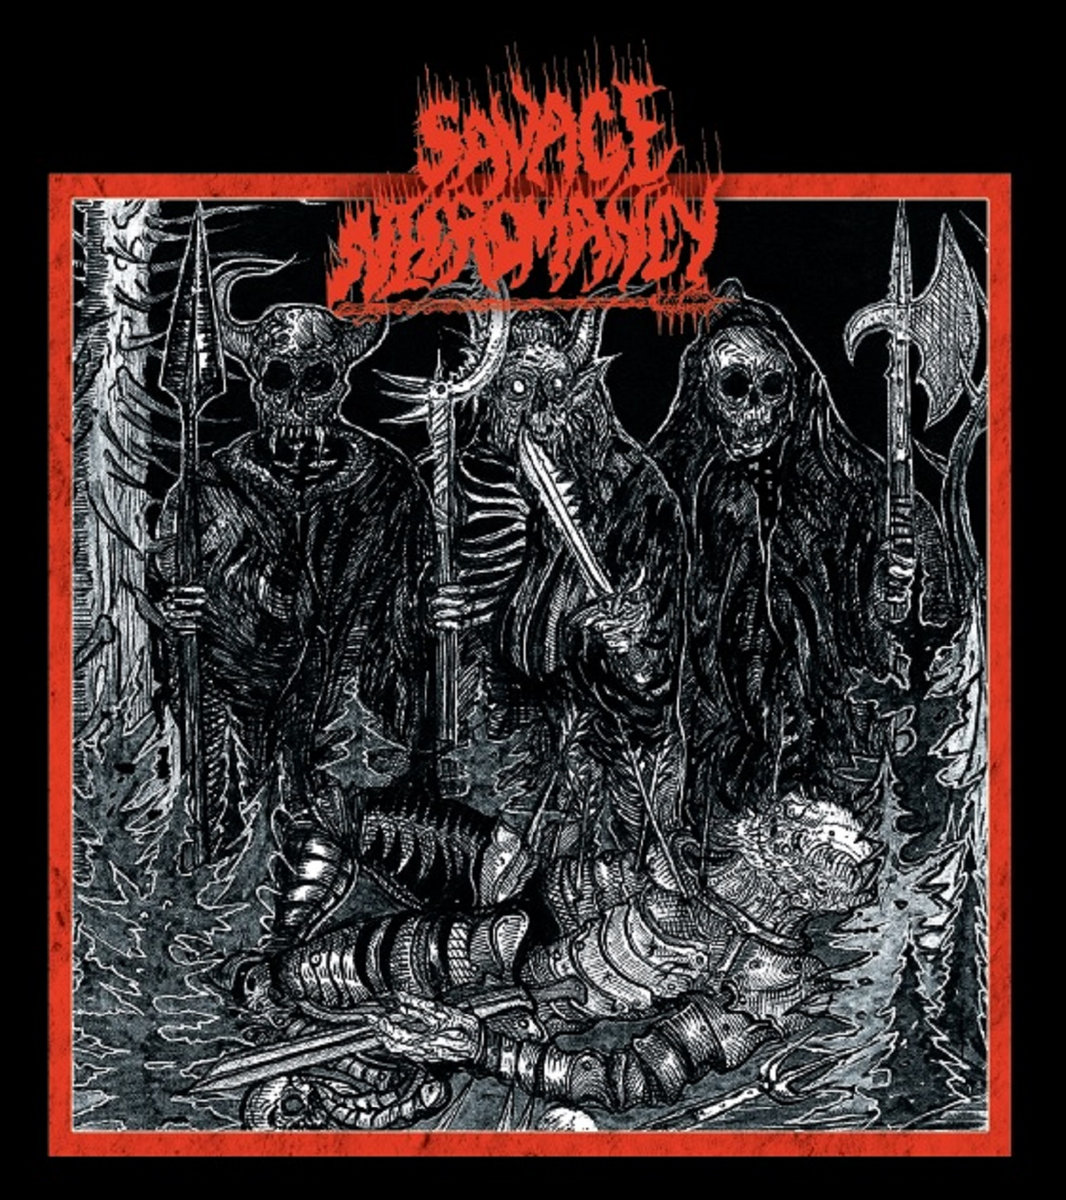 SAVAGE NECROMANCY - Savage Necromancy